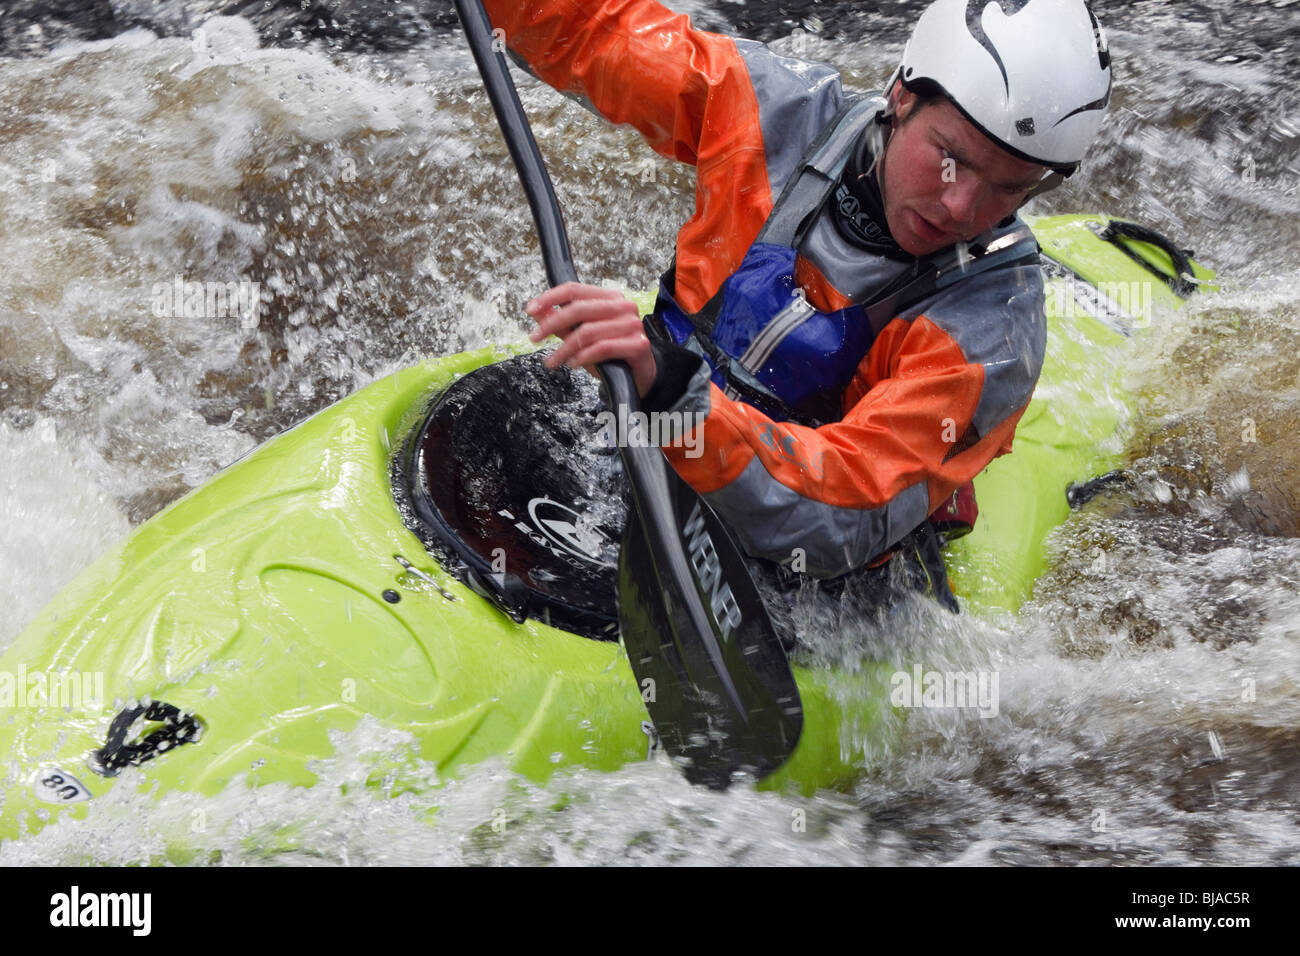 Kayaker kayaking in a kayak canoe in white water on Tryweryn River at the National Whitewater Centre, Frongoch, - Stock Image